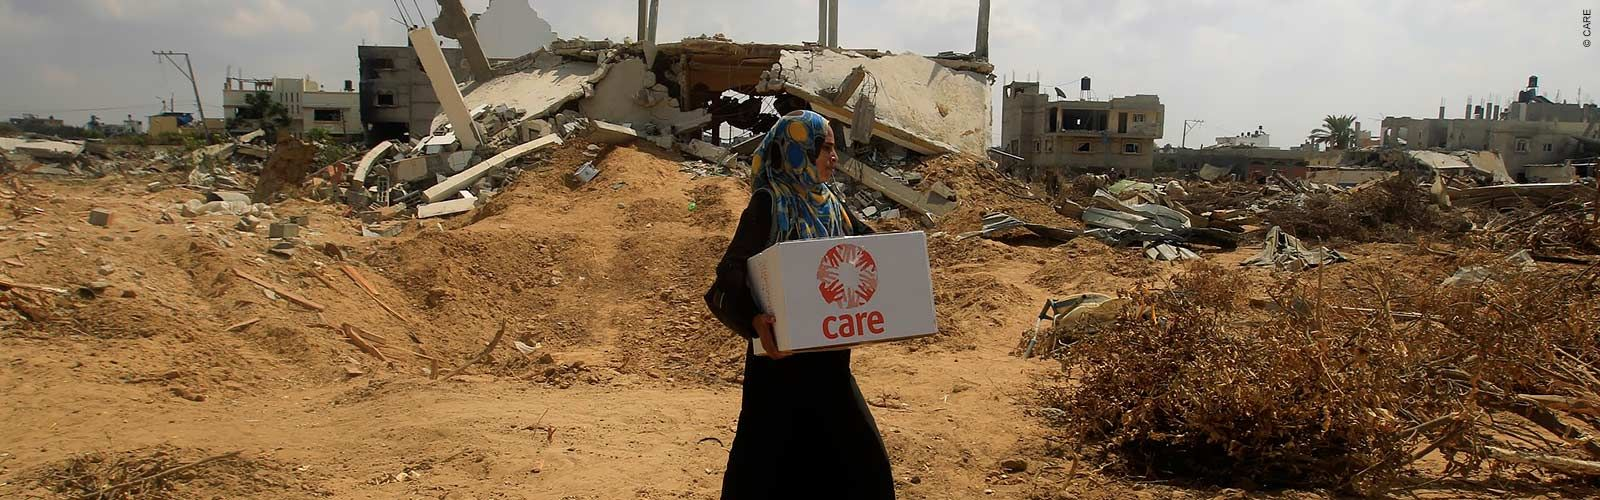 A woman carries a CARE package past destroyed buildings during the Gaza Crisis